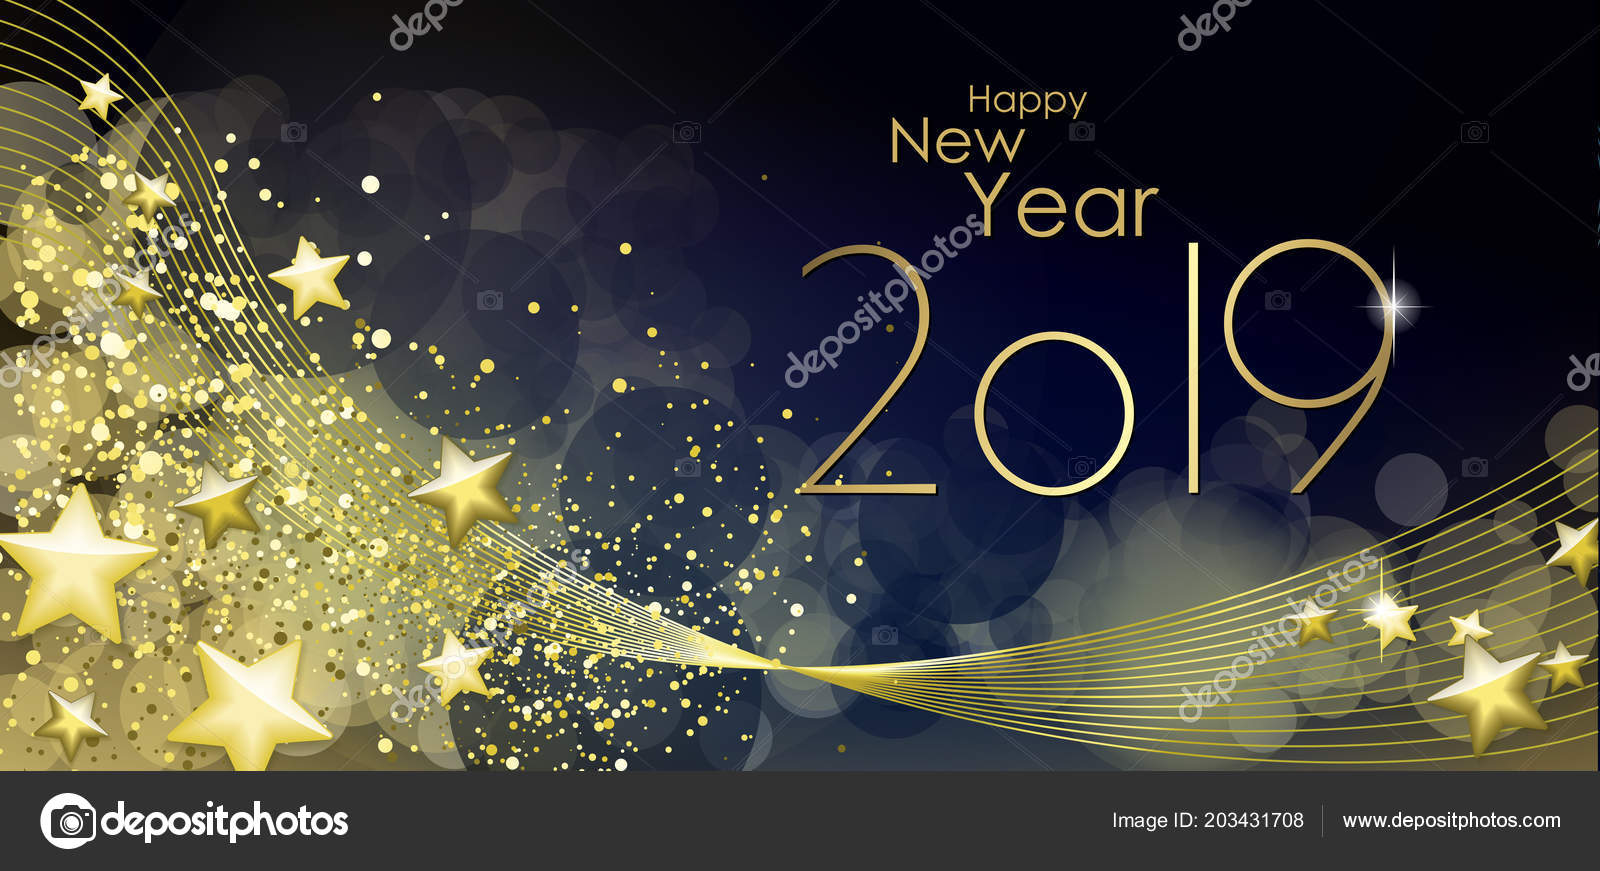 happy new year 2019 greetings card